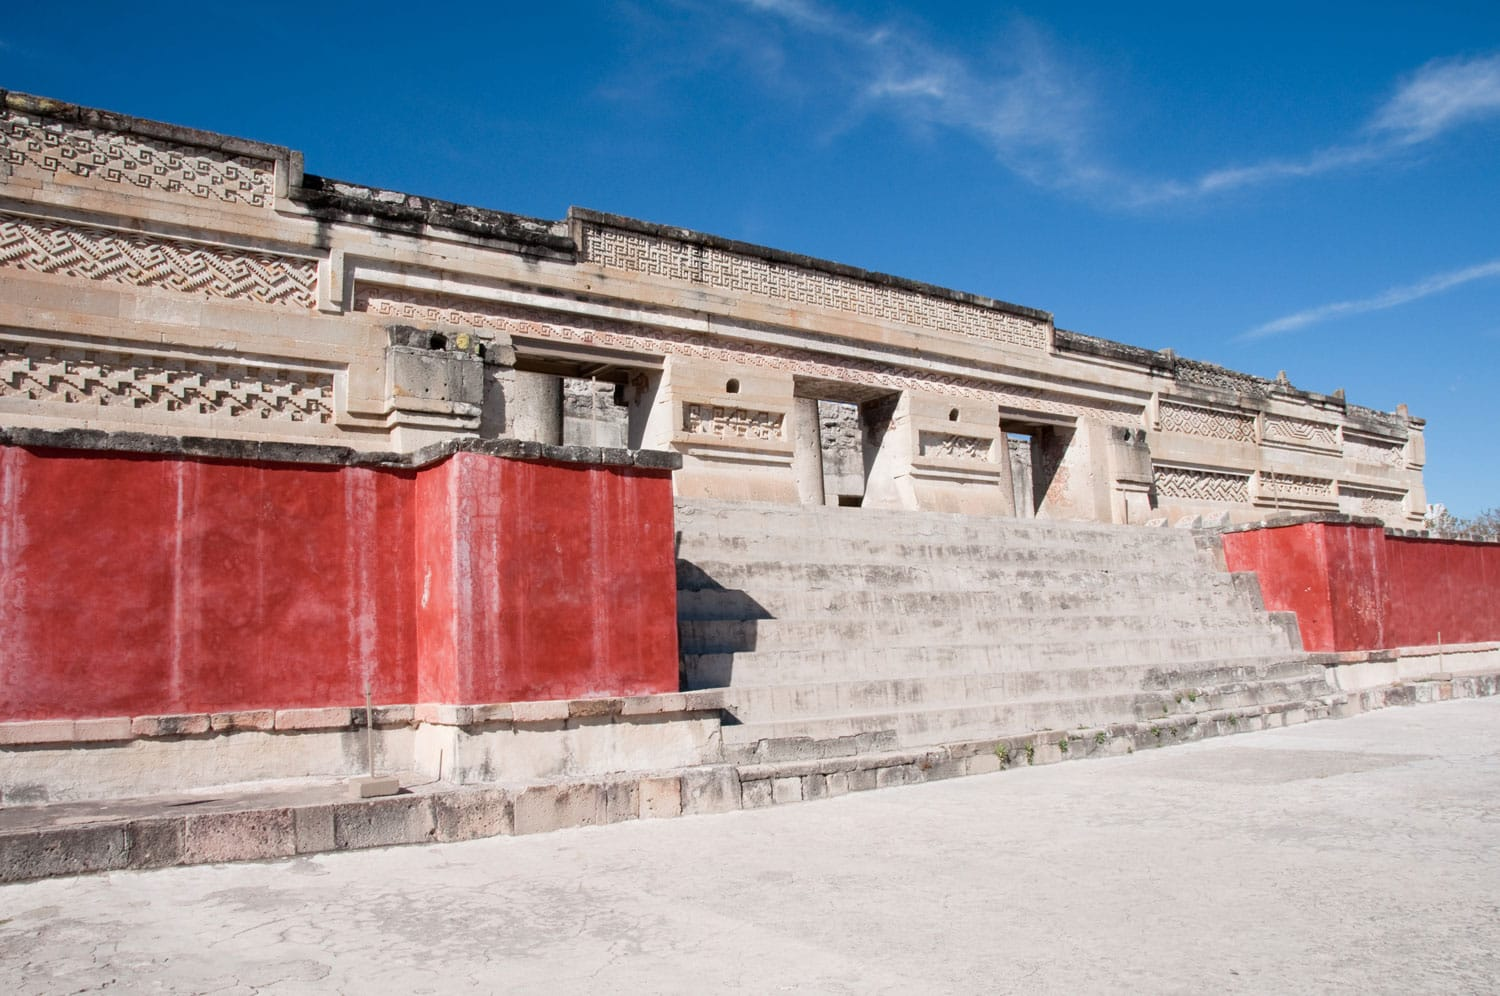 Archaeological site of Mitla, Oaxaca (Mexico)